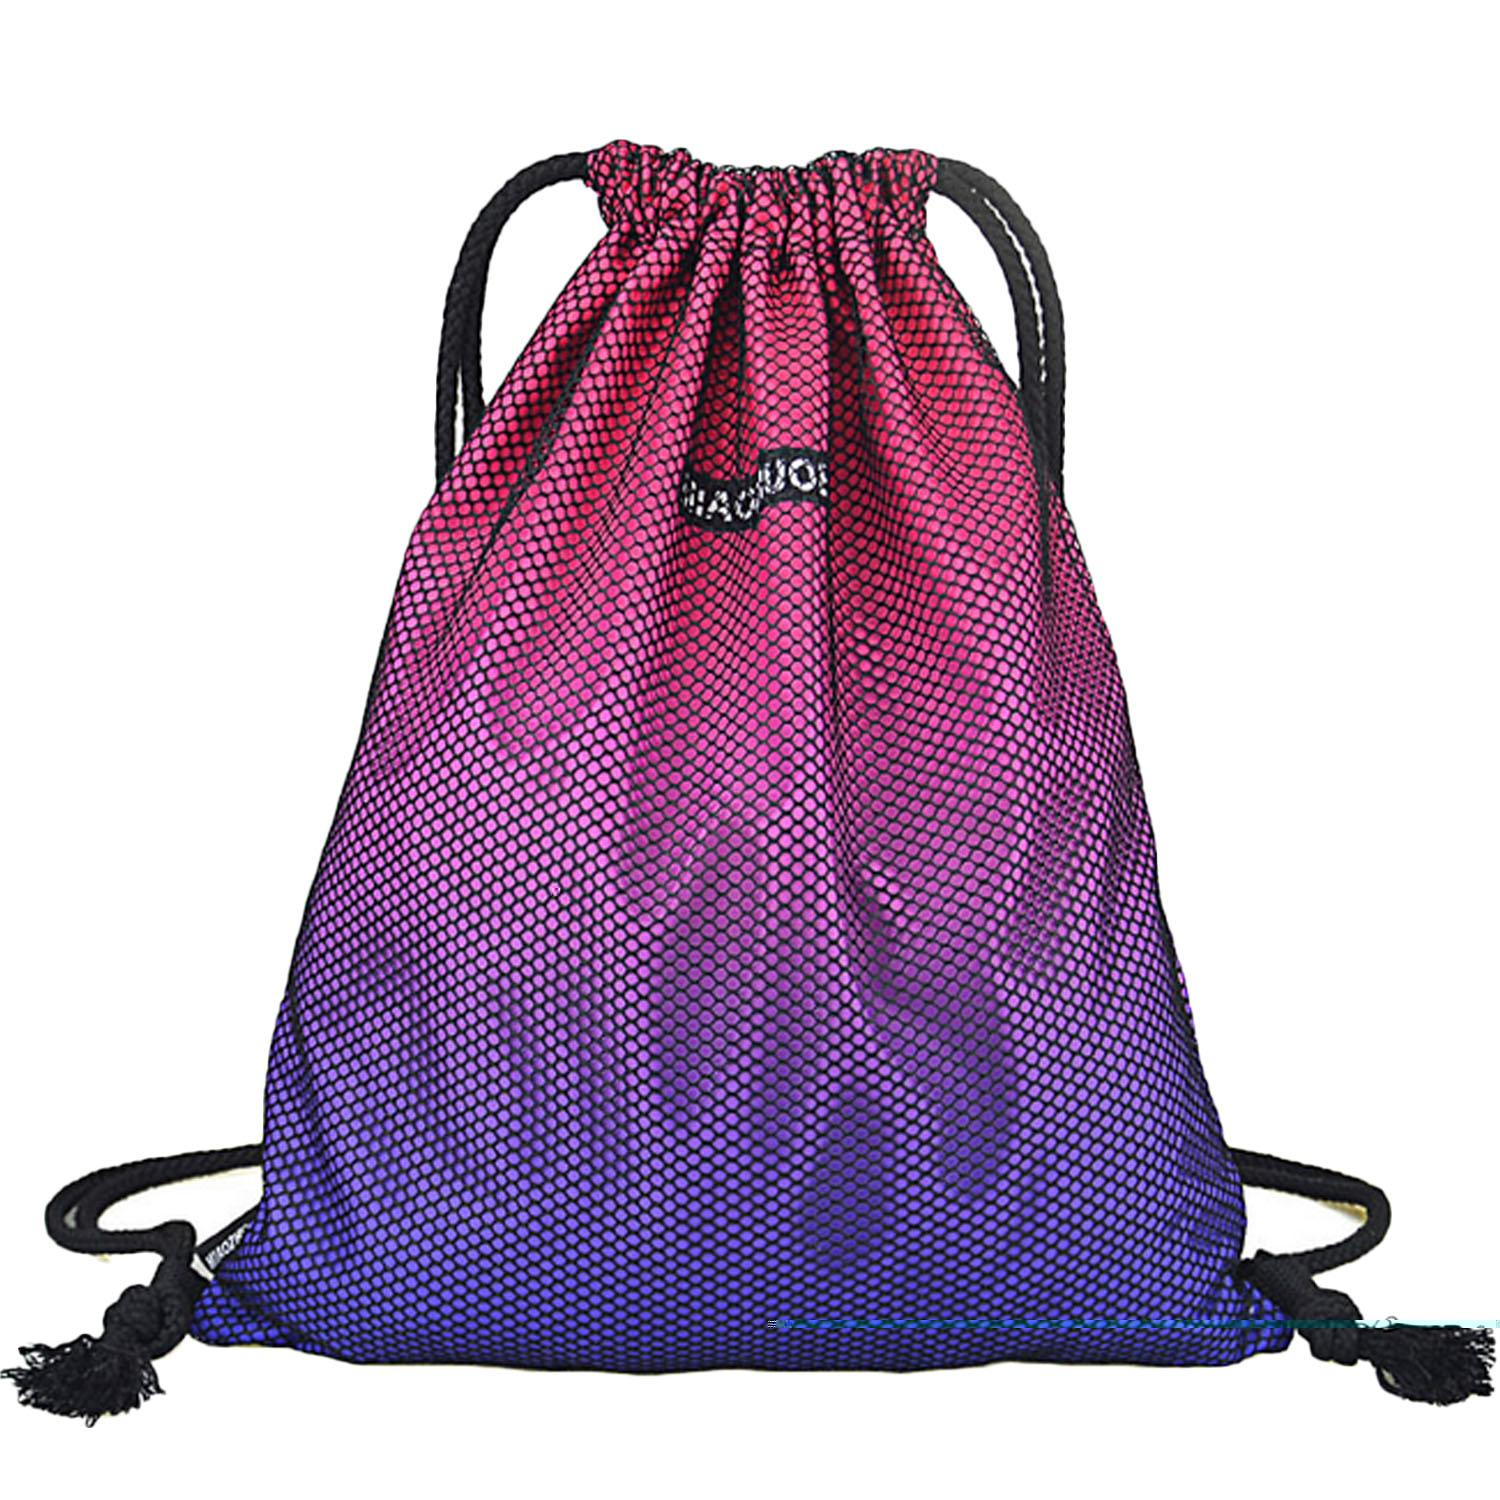 d3c2be2cc5c9 Portable Polyester Drawstring Bag Leisure Travel Sports Gym Lightweight String  Backpack Rose Red - intl